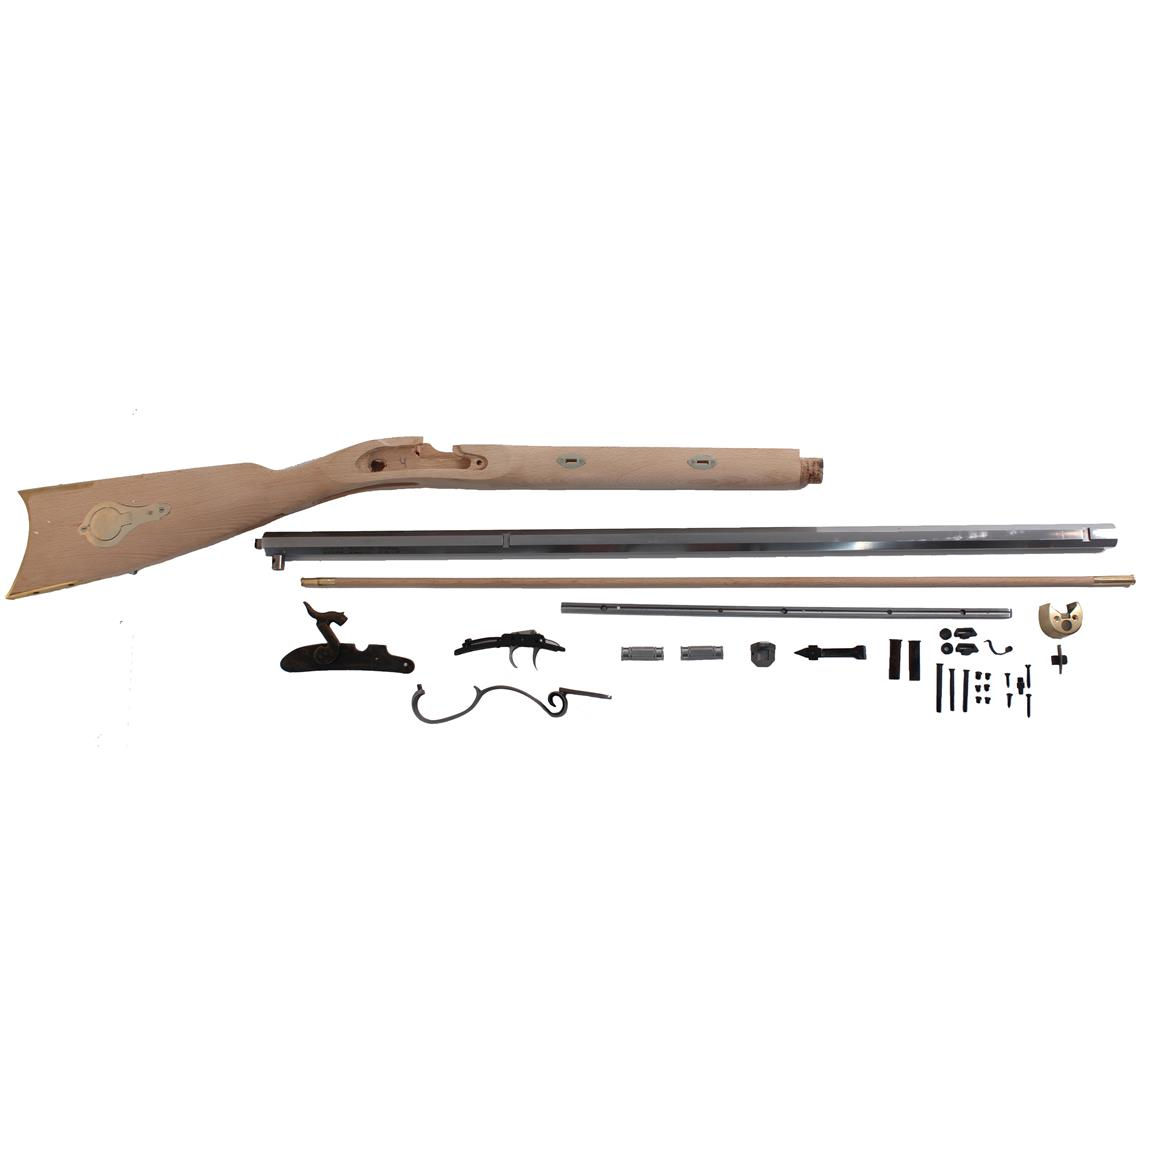 Traditions mountain rifle percussion 50 caliber build it yourself traditions mountain rifle percussion 50 caliber build it yourself muzzleloader kit 40499 solutioingenieria Gallery